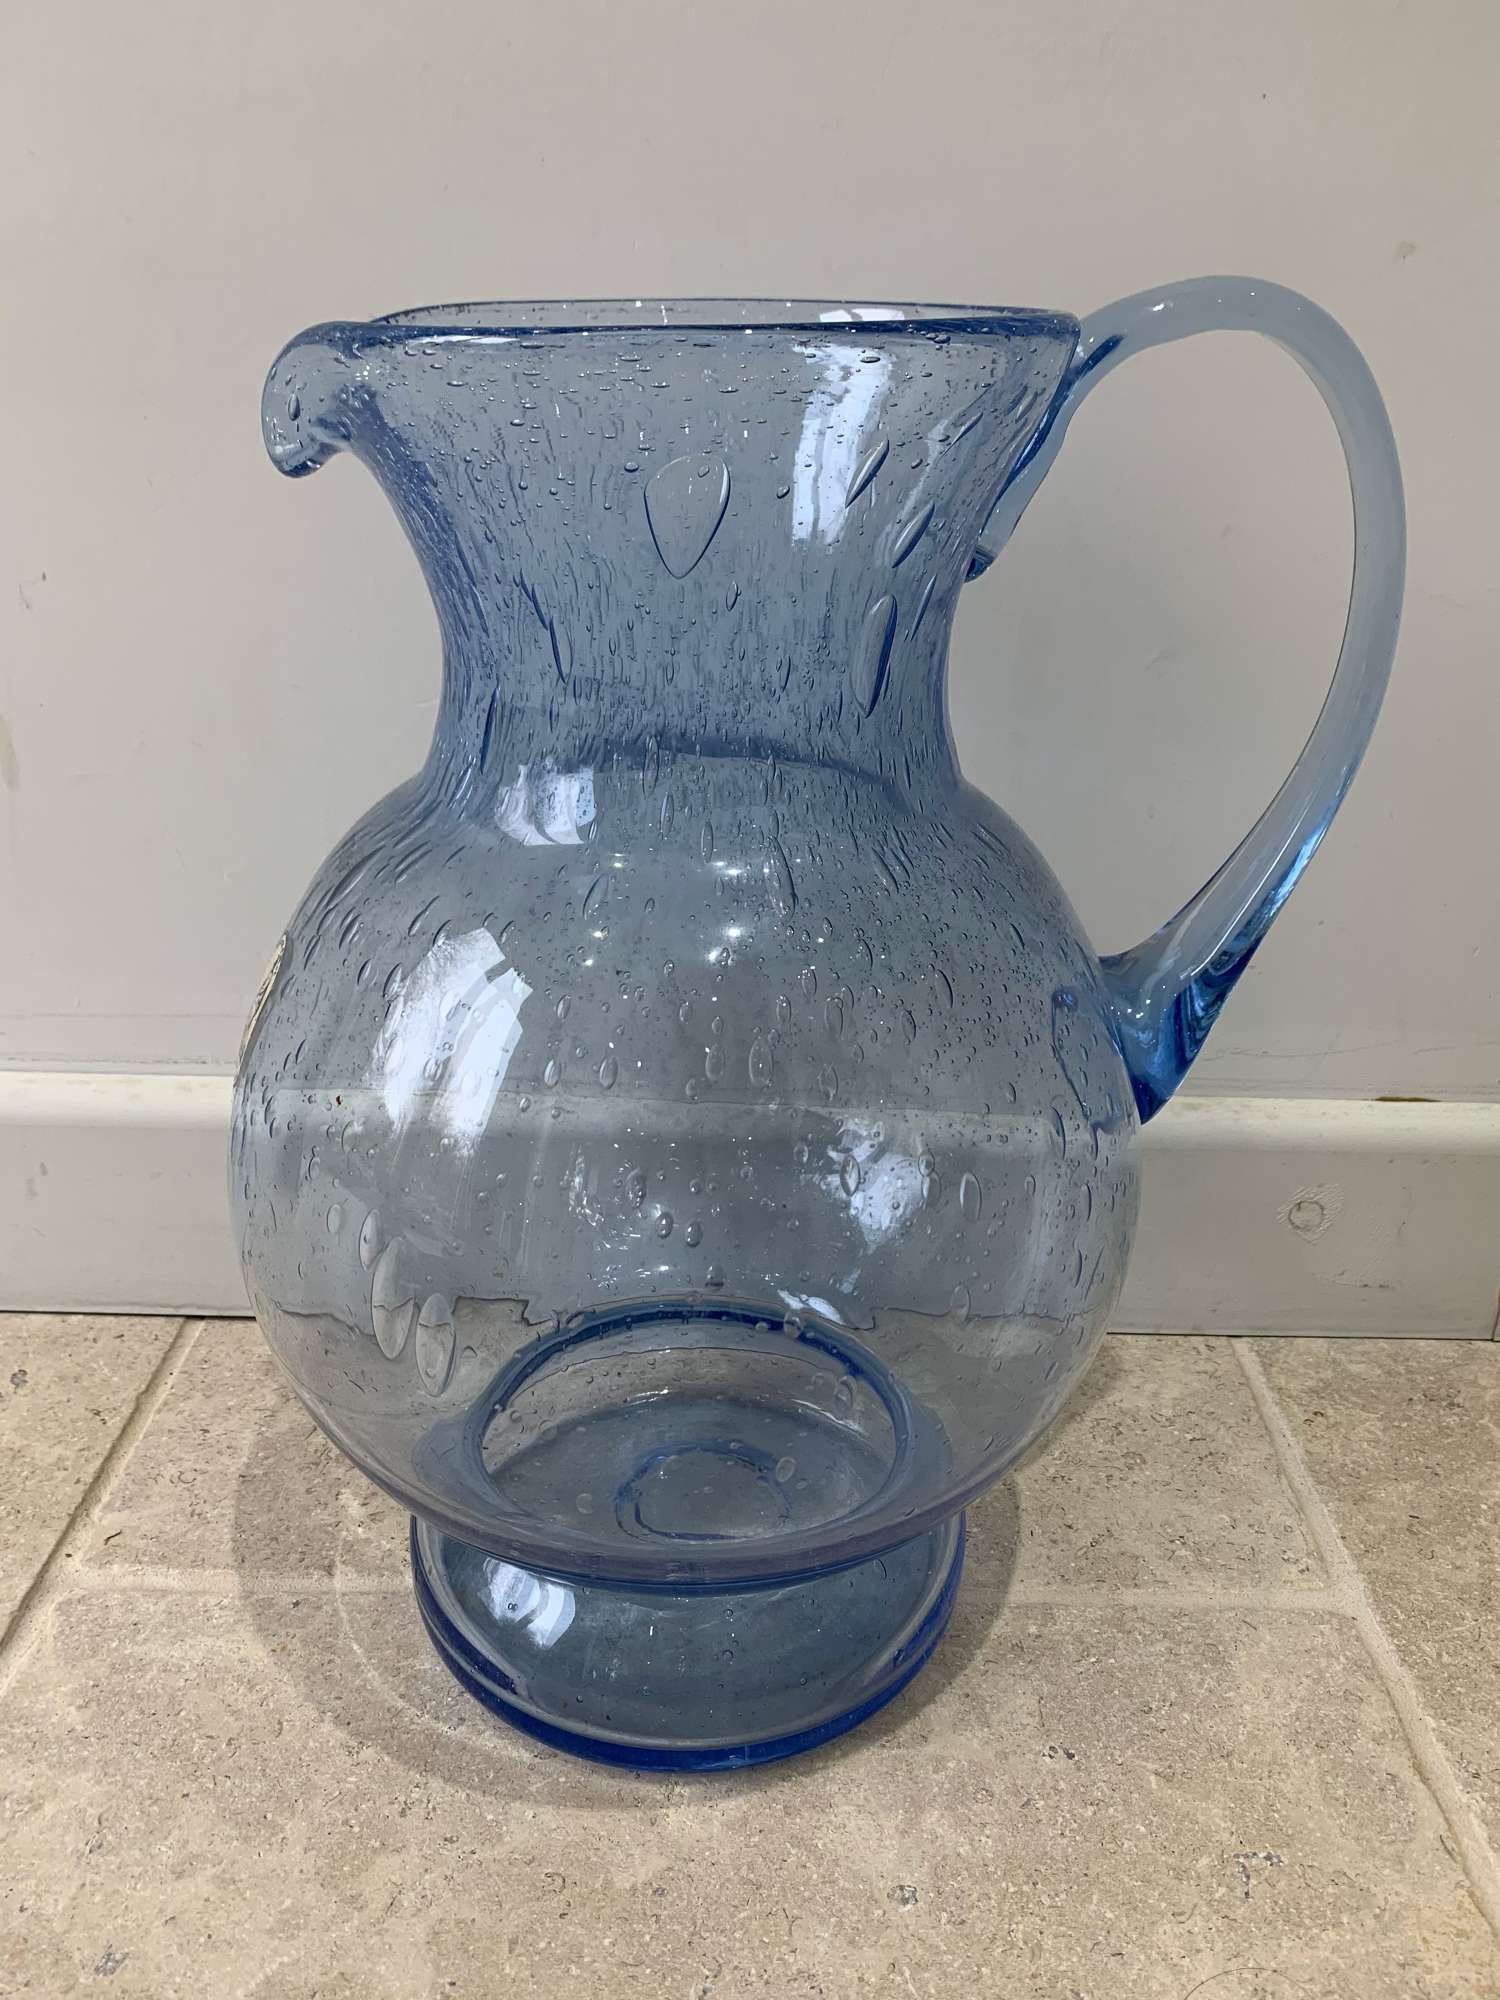 Large artisanal glass jug